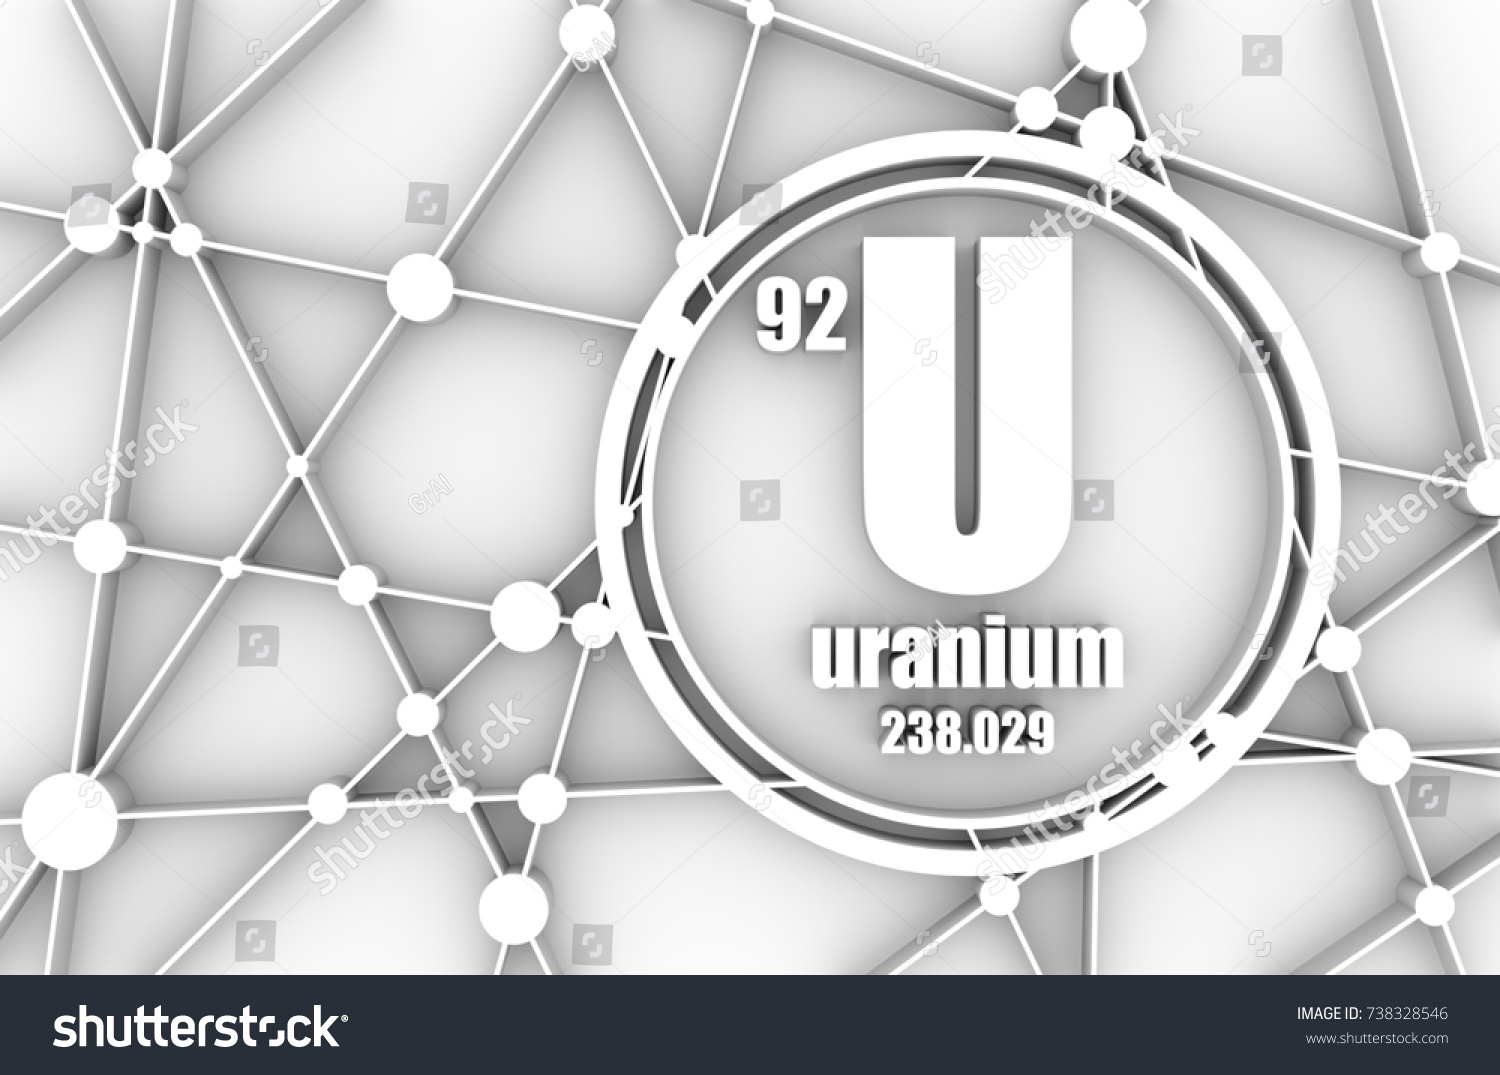 Uranium chemical element sign atomic number stock illustration uranium chemical element sign with atomic number and atomic weight chemical element of periodic urtaz Gallery